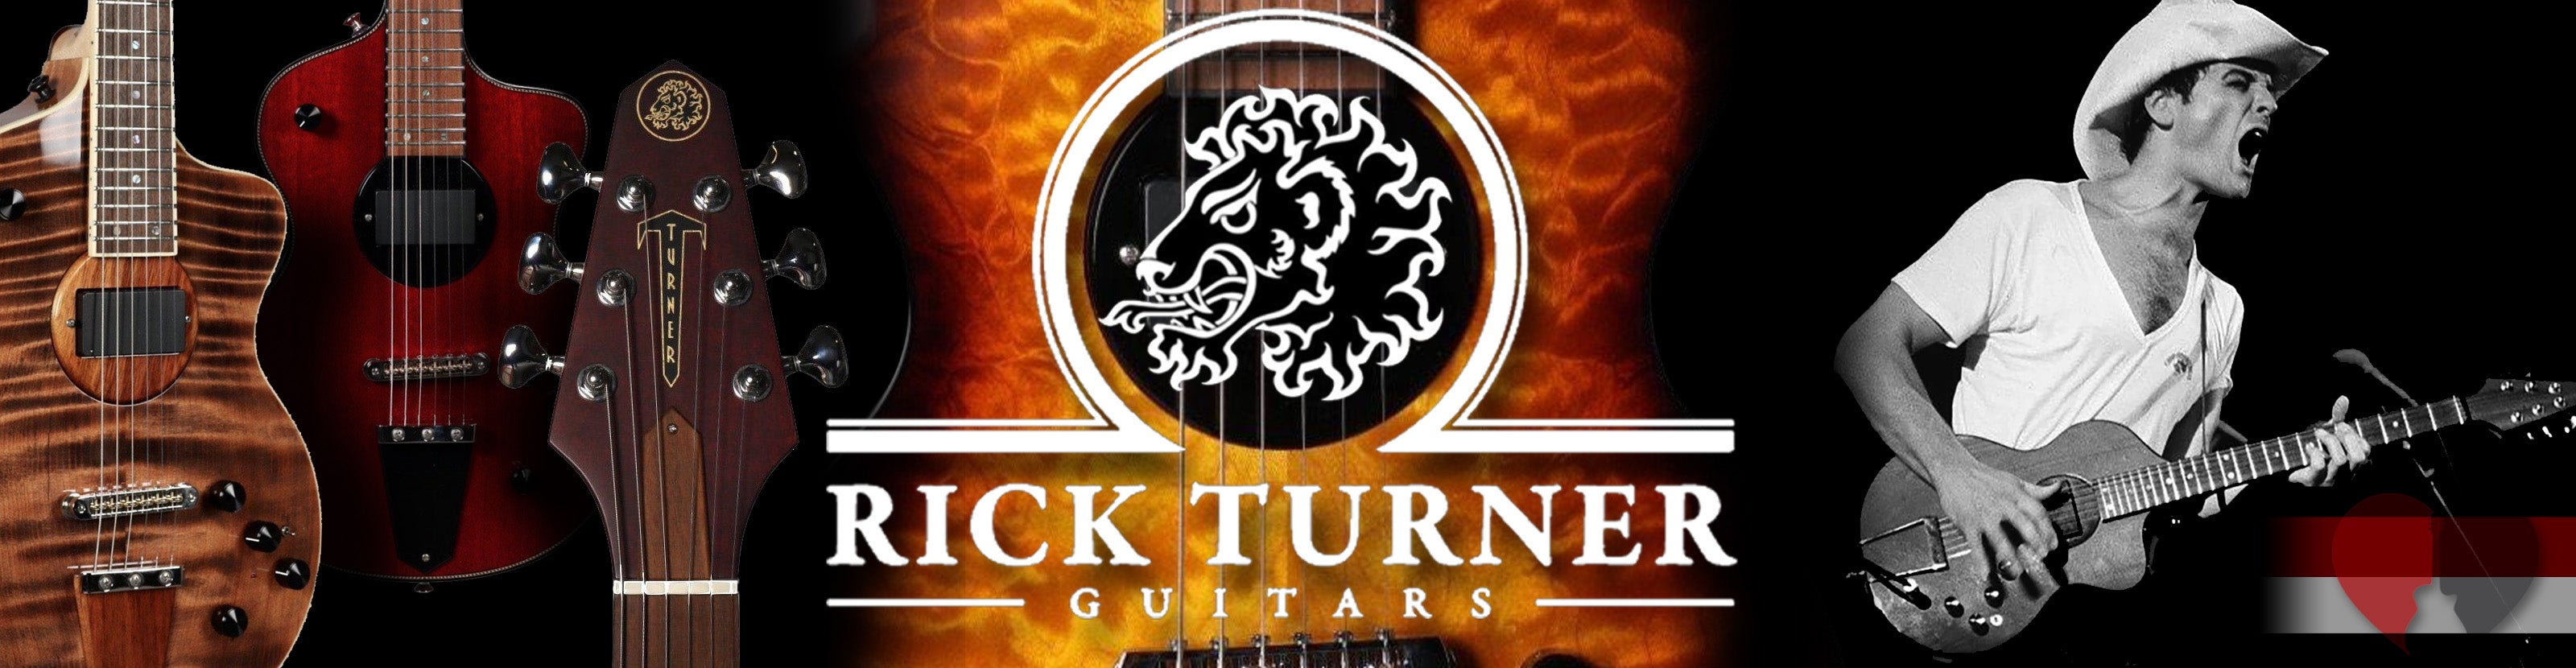 Rick Turner Guitars